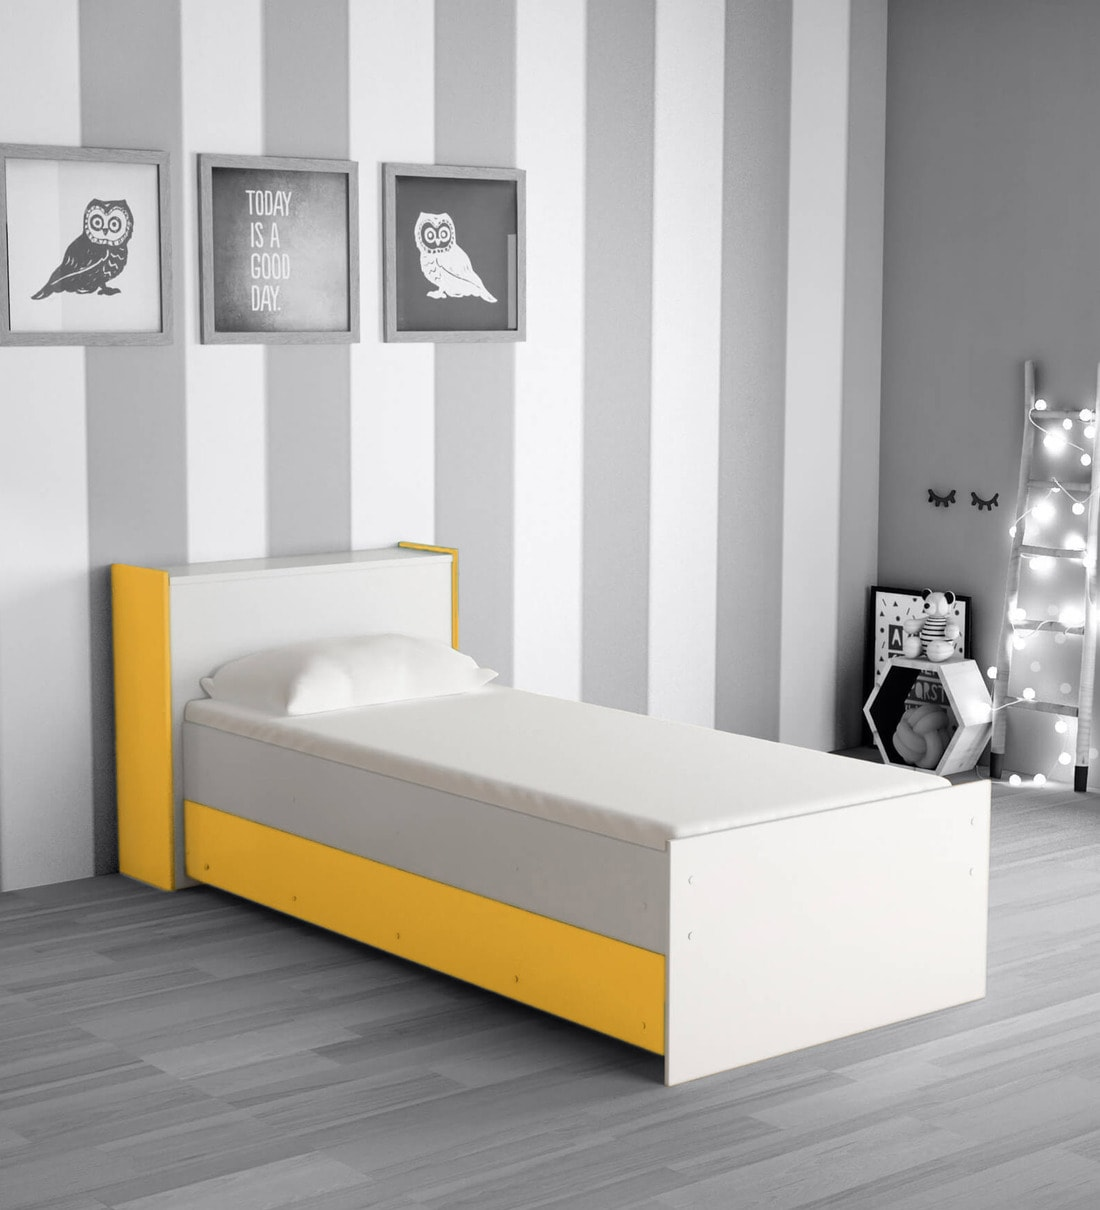 Buy Ashley Trundle Bed With Headboard Storage In Satin White Yellow Finish Casacraft By Pepperfry Online Trundle Beds Beds Furniture Pepperfry Product